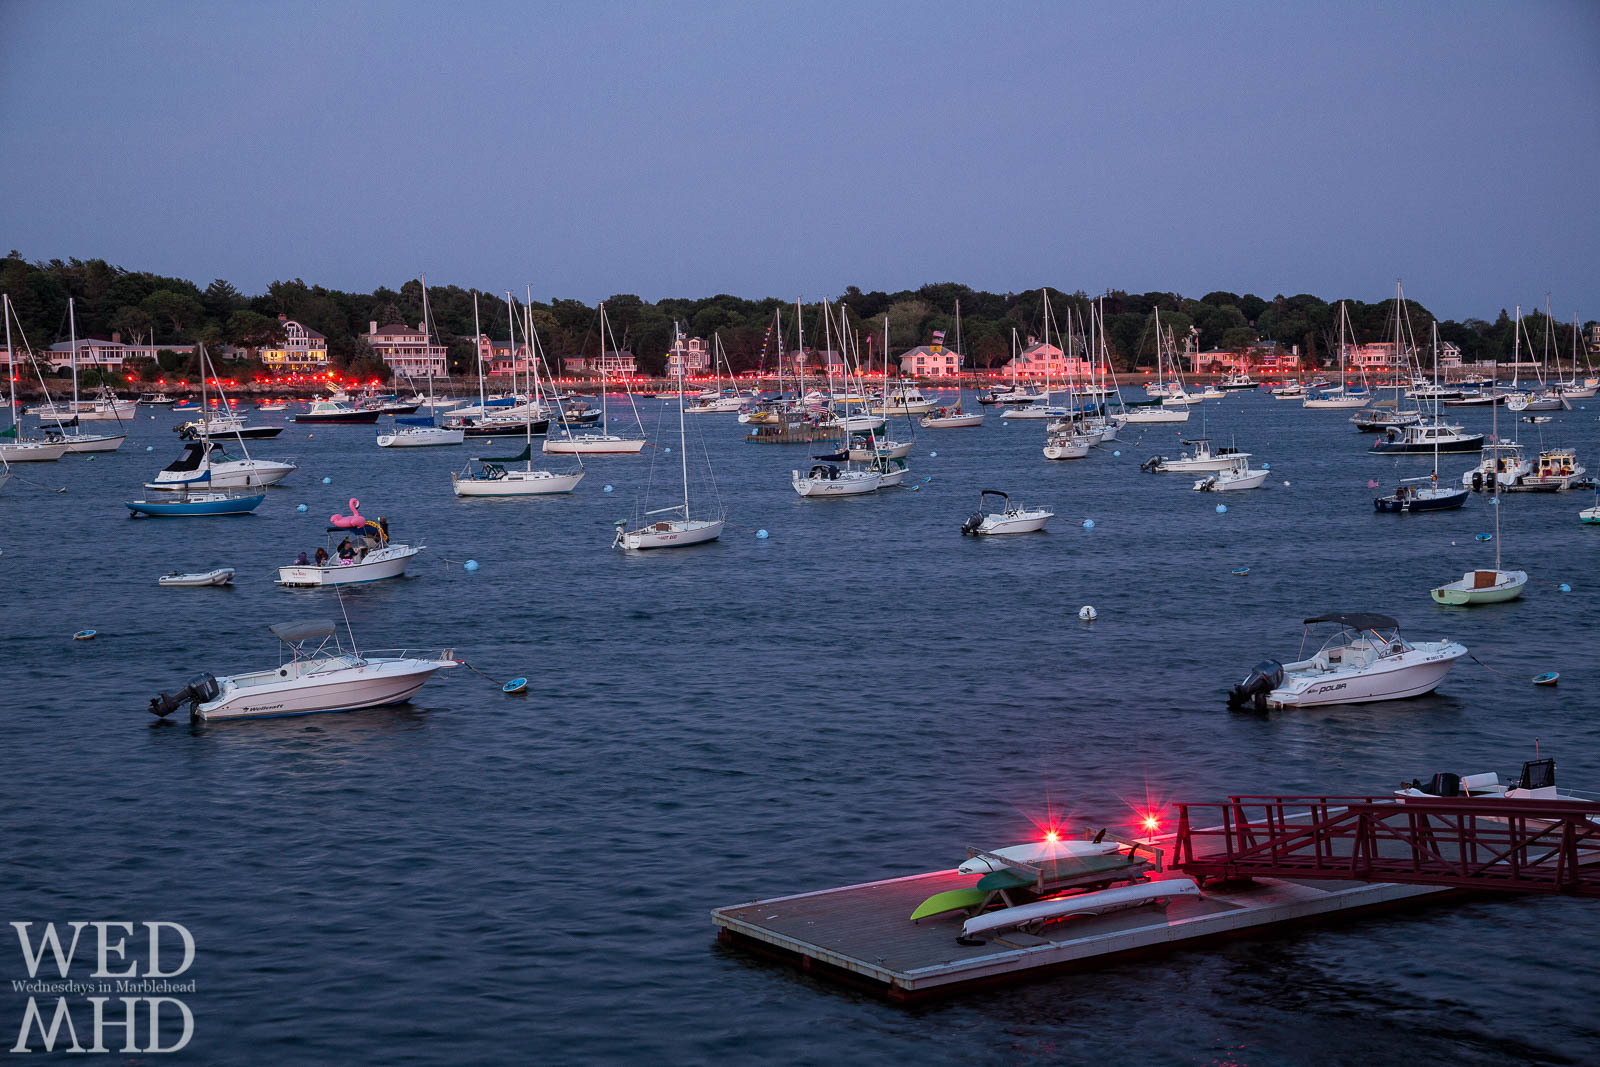 The annual Harbor Illumination takes place on the Fourth of July with lit flares around the harbor setting the scene for the fireworks show